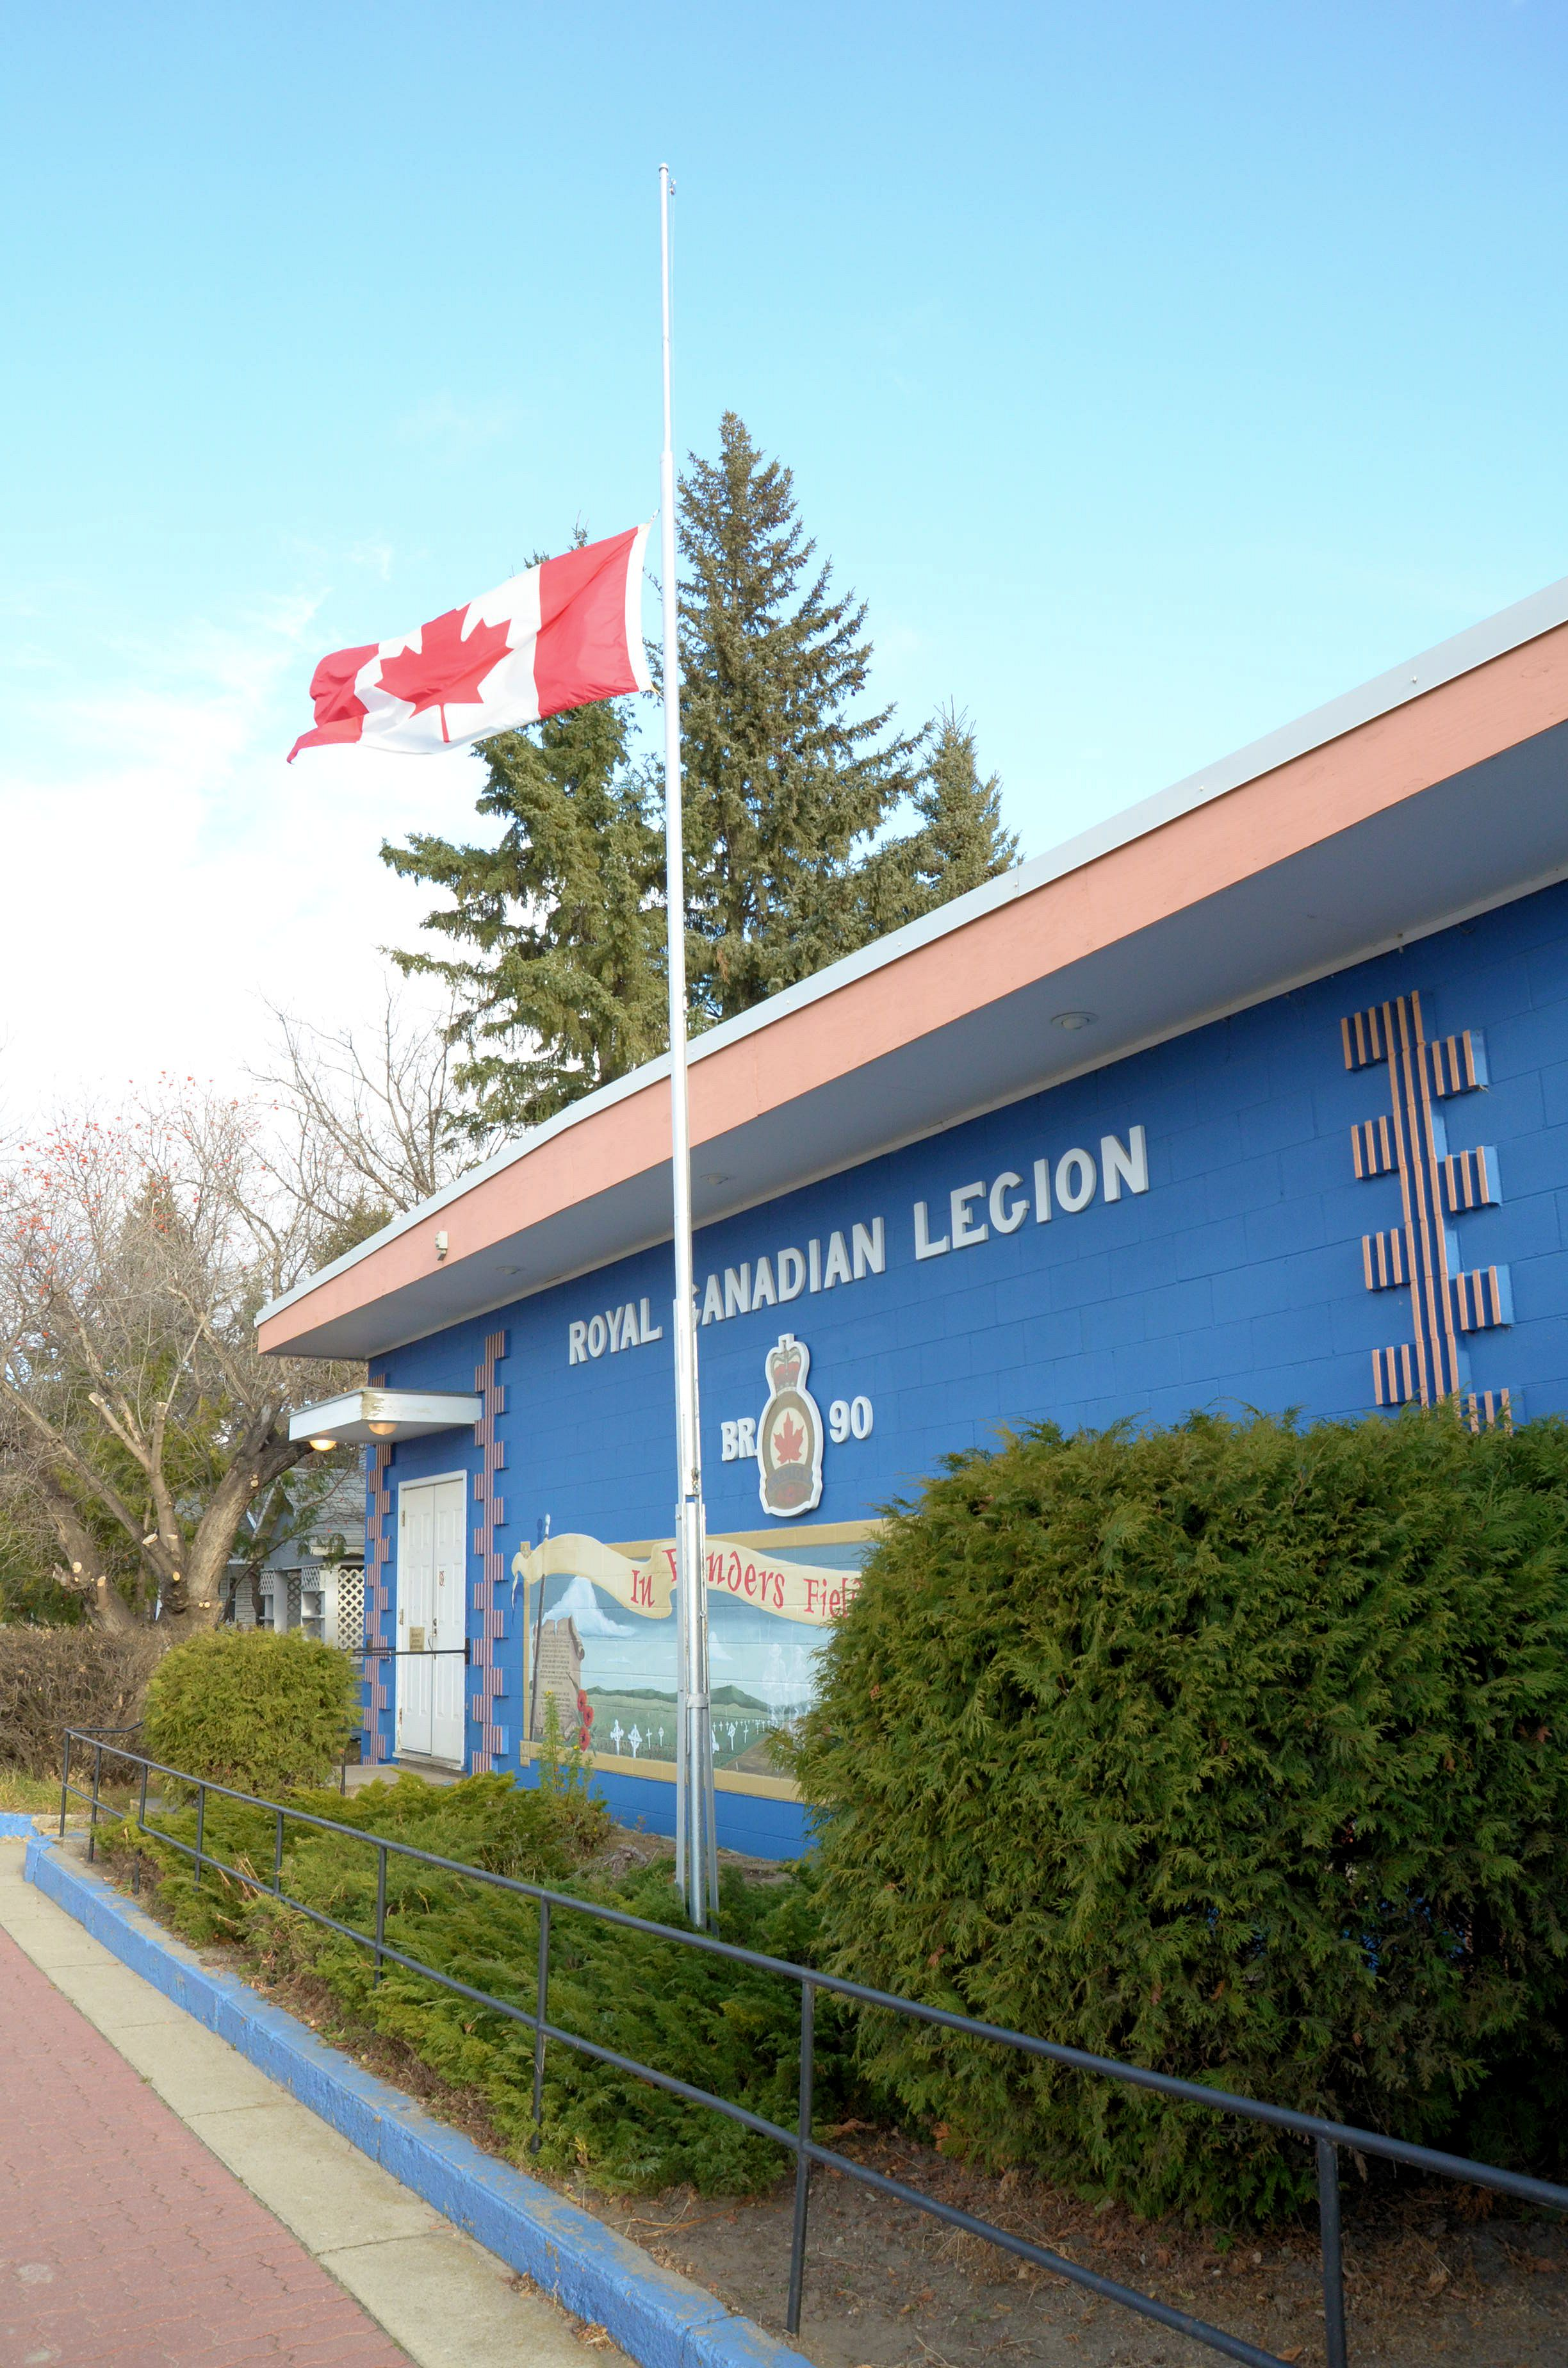 royal canadian legion remembrance day essay contest